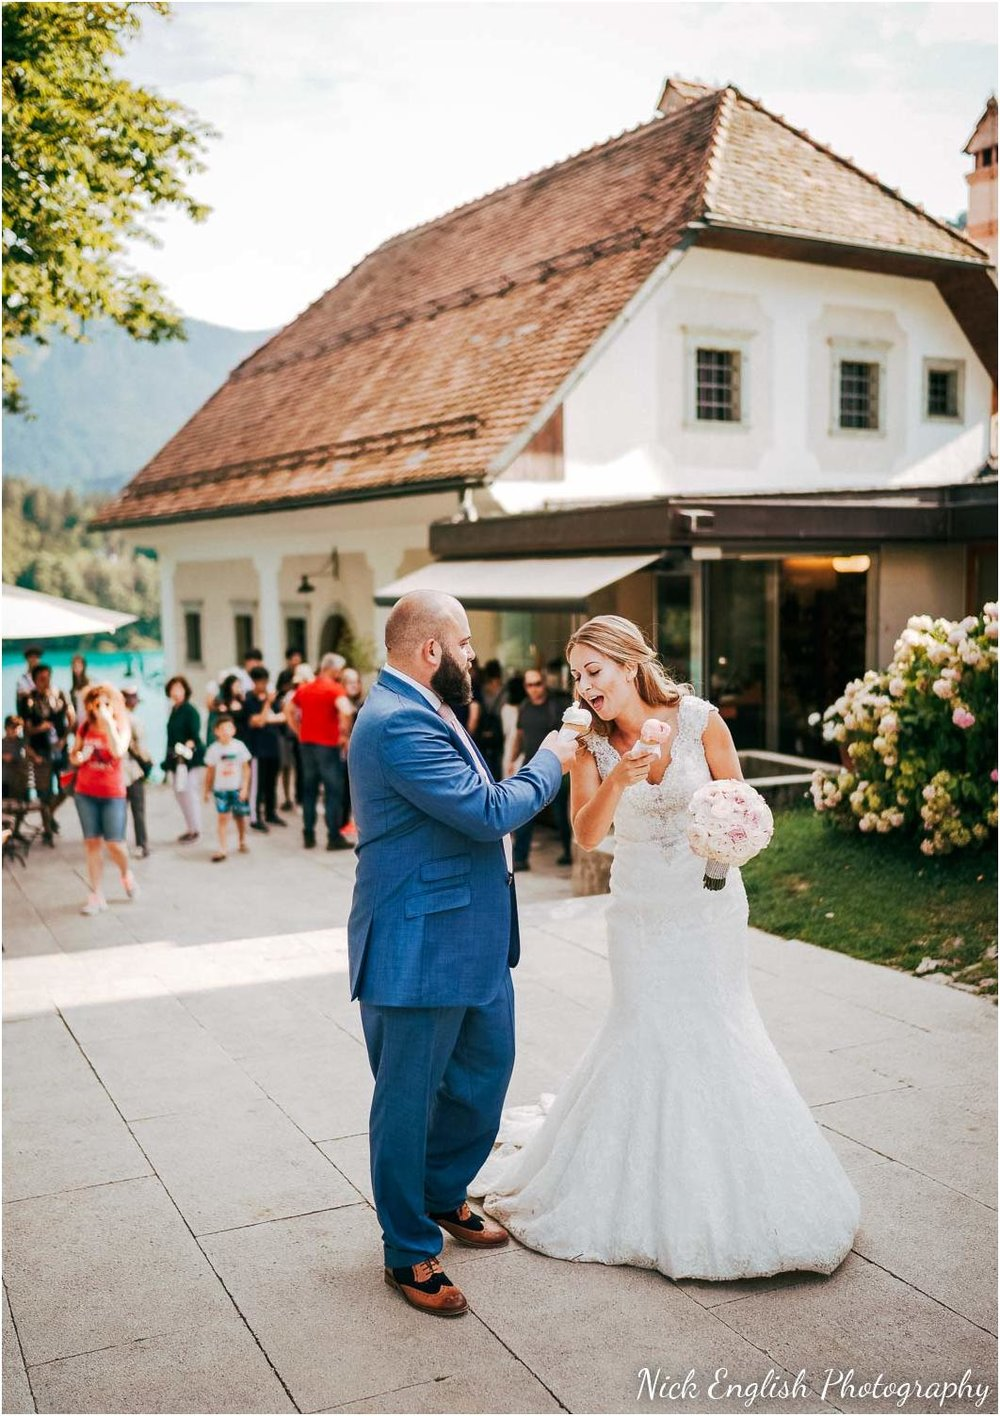 Destination_Wedding_Photographer_Slovenia_Nick_English_Photography-70-17.jpg